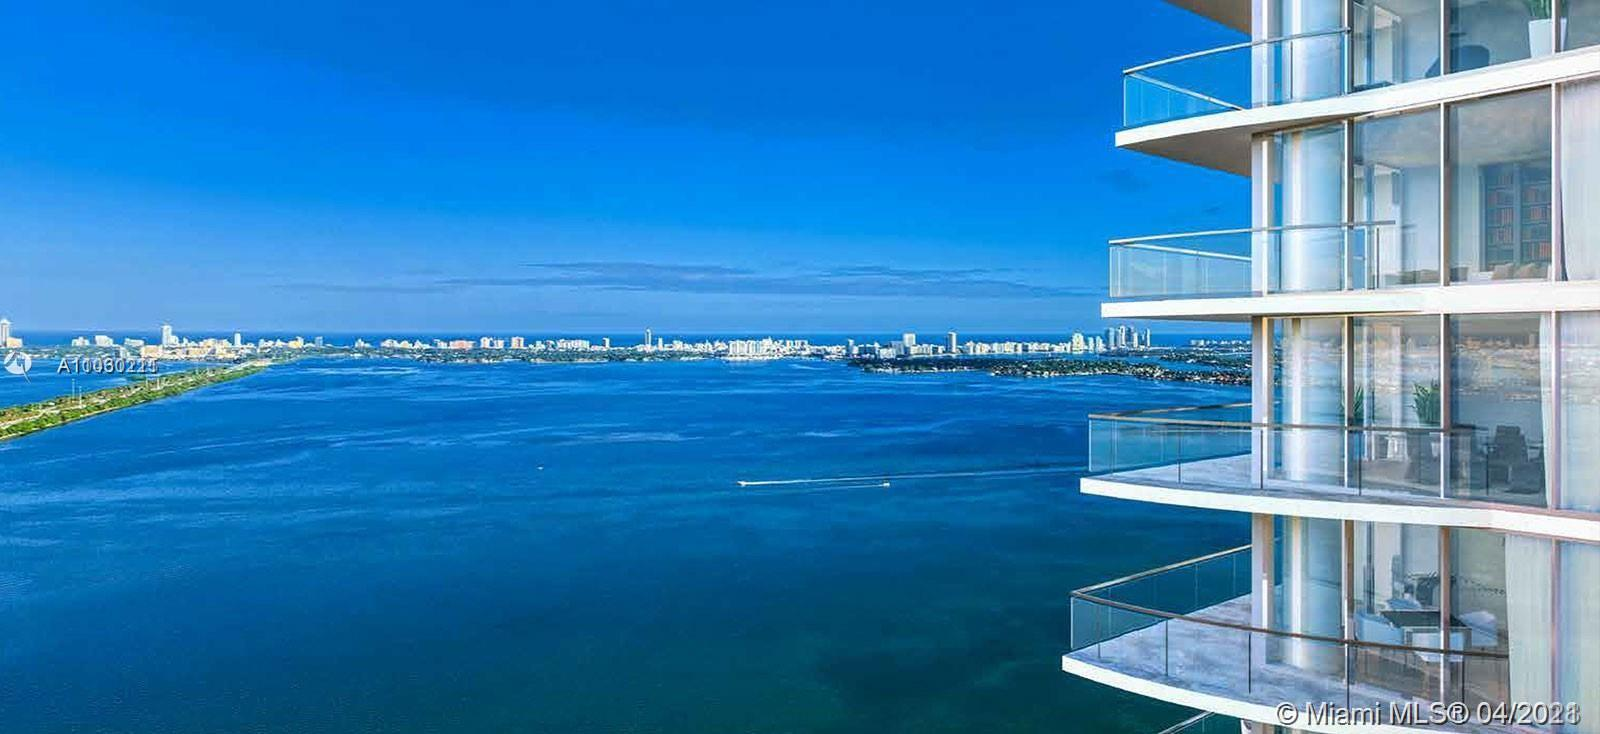 Luxurious 1 bed+den & 2 full bath in the Edgewater district of Miami.Great open space unit with floo